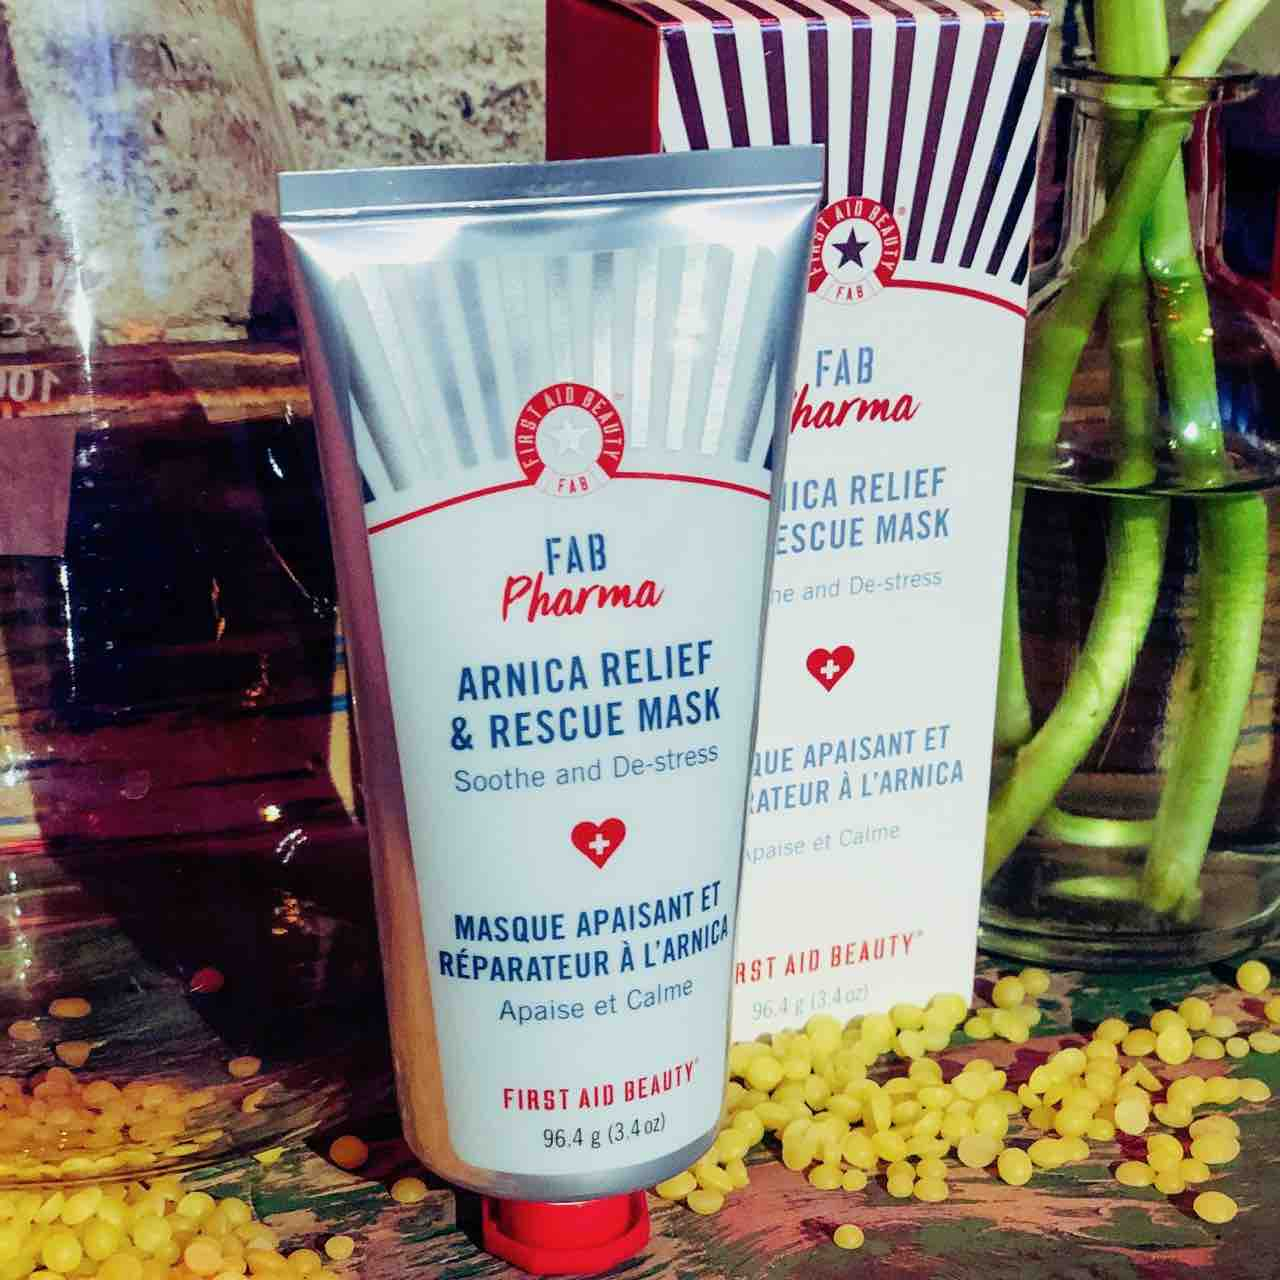 First Aid Beauty Rescues Dry Irritated Skin When Temperatures Plummet